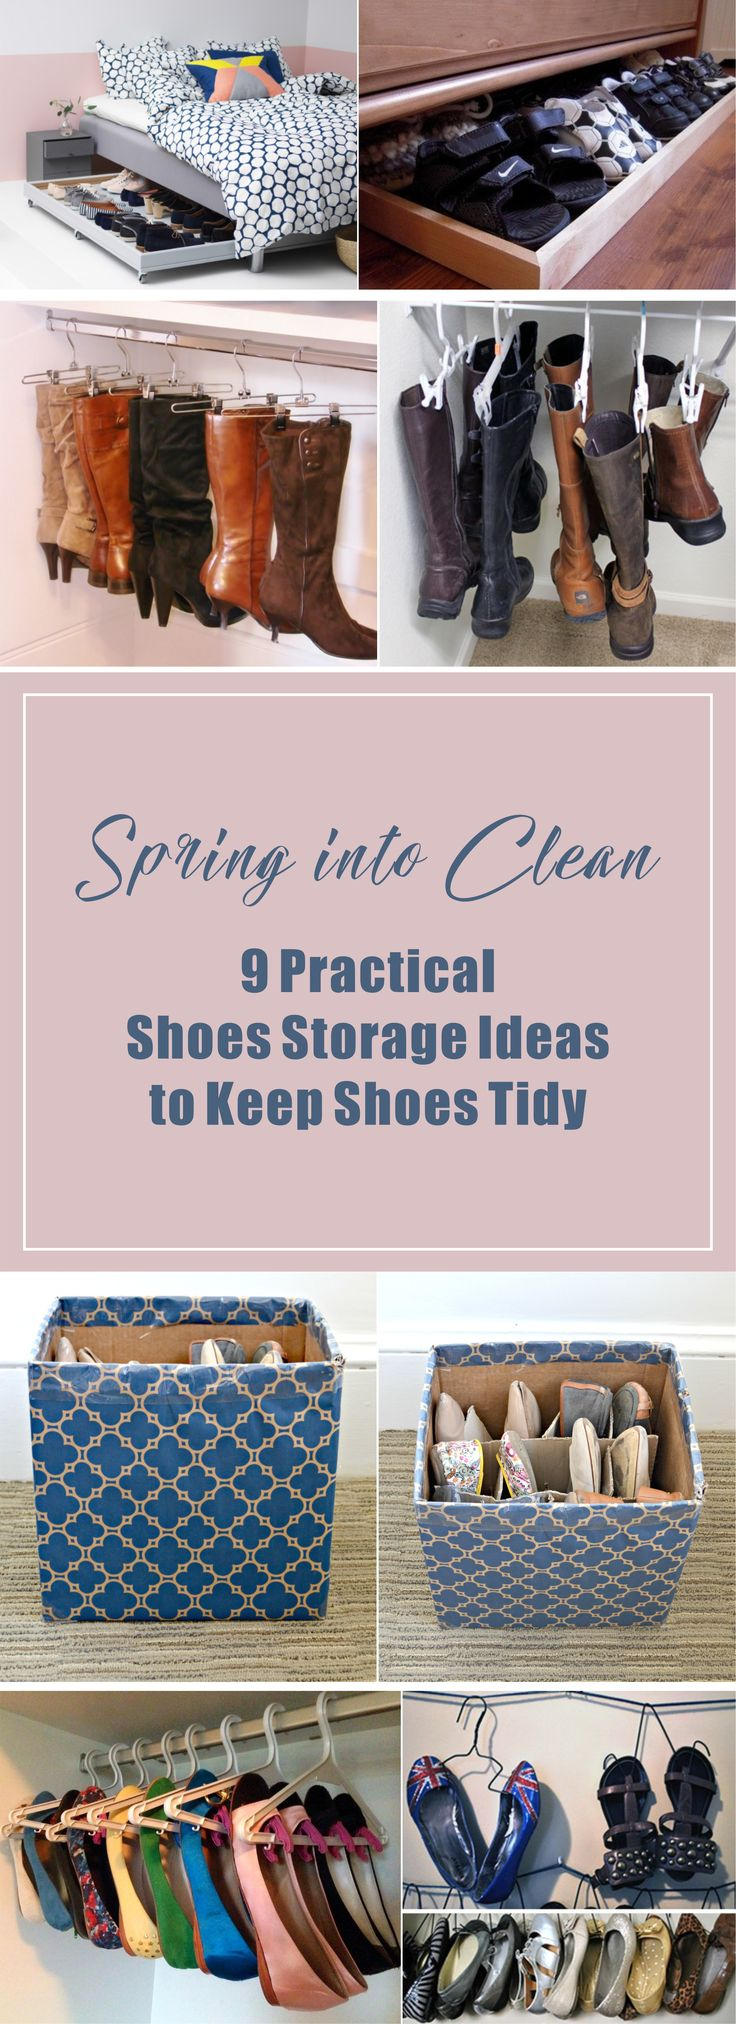 Spring Into Clean: 9 Practical Shoes Storage Ideas to Keep Shoes Tidy